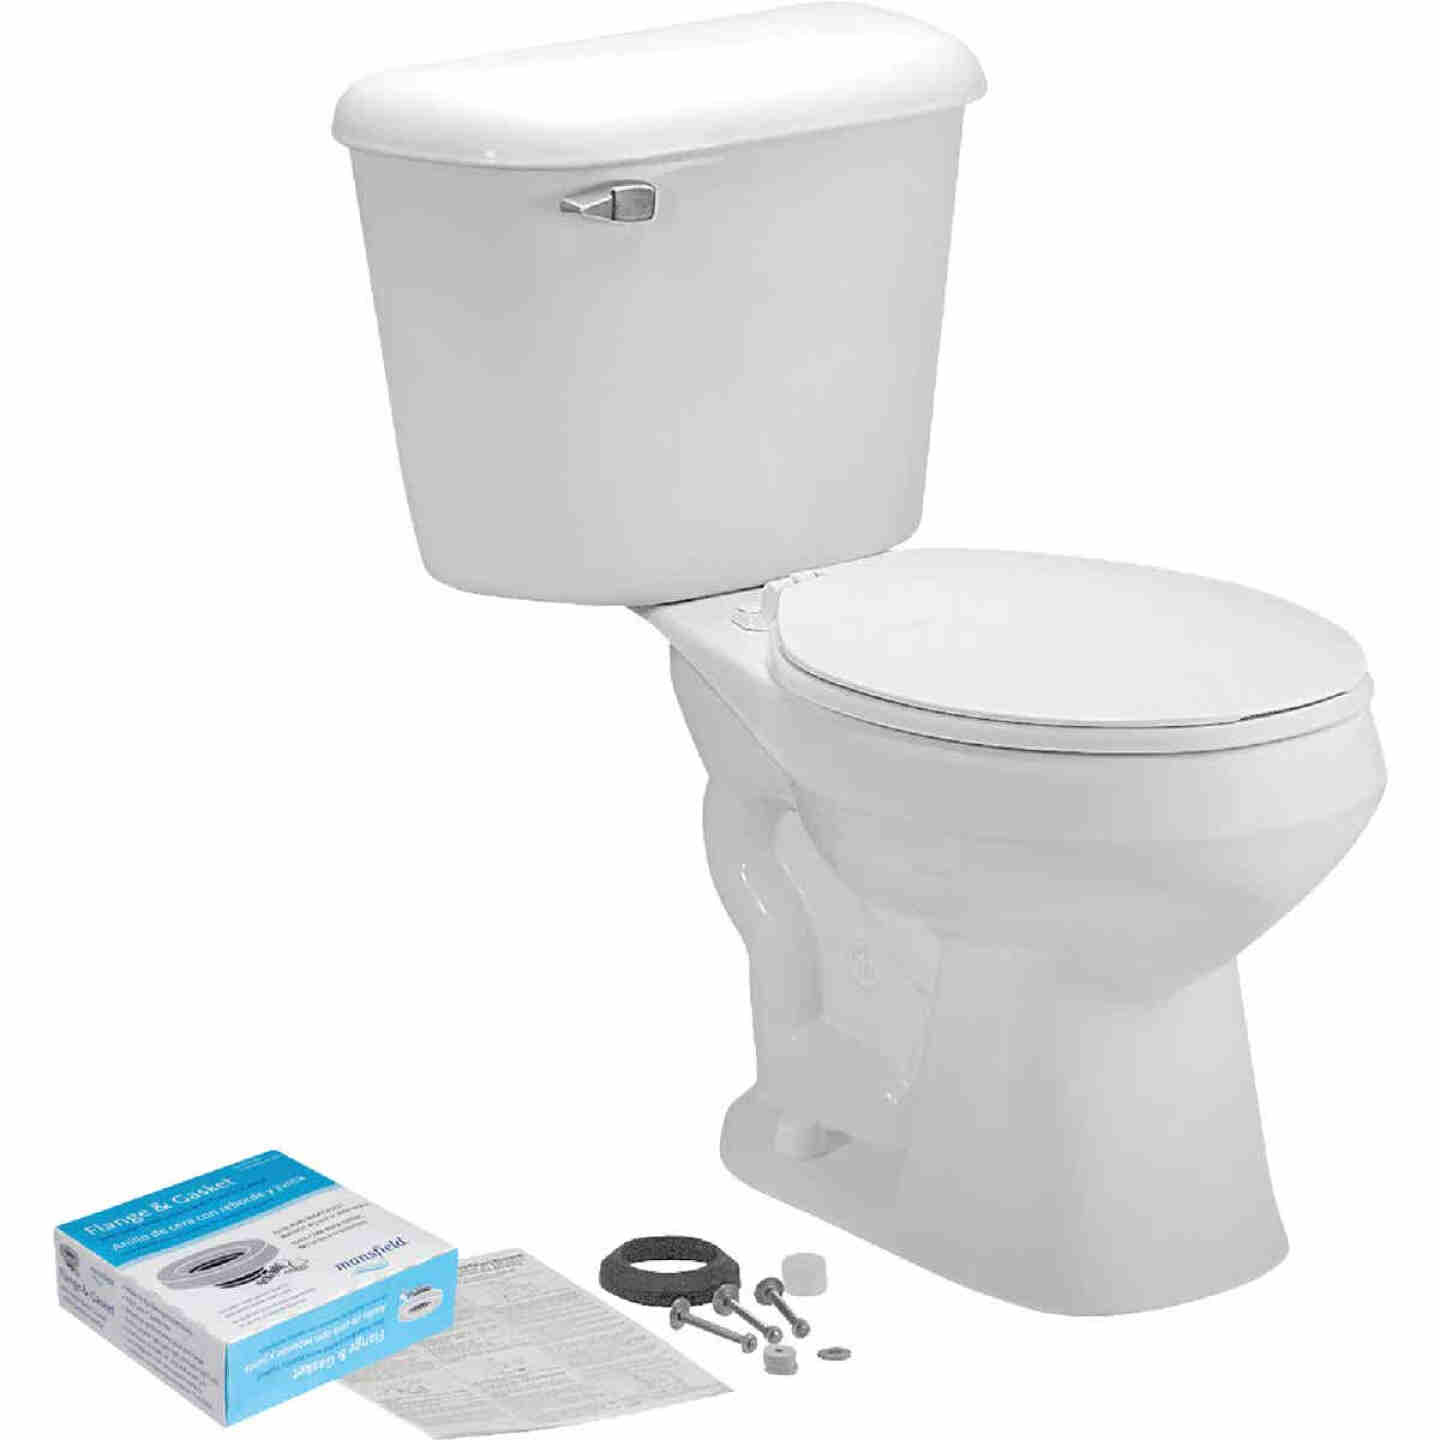 Mansfield Pro-Fit 1 White Round Bowl 1.6 GPF Complete Toilet Image 3